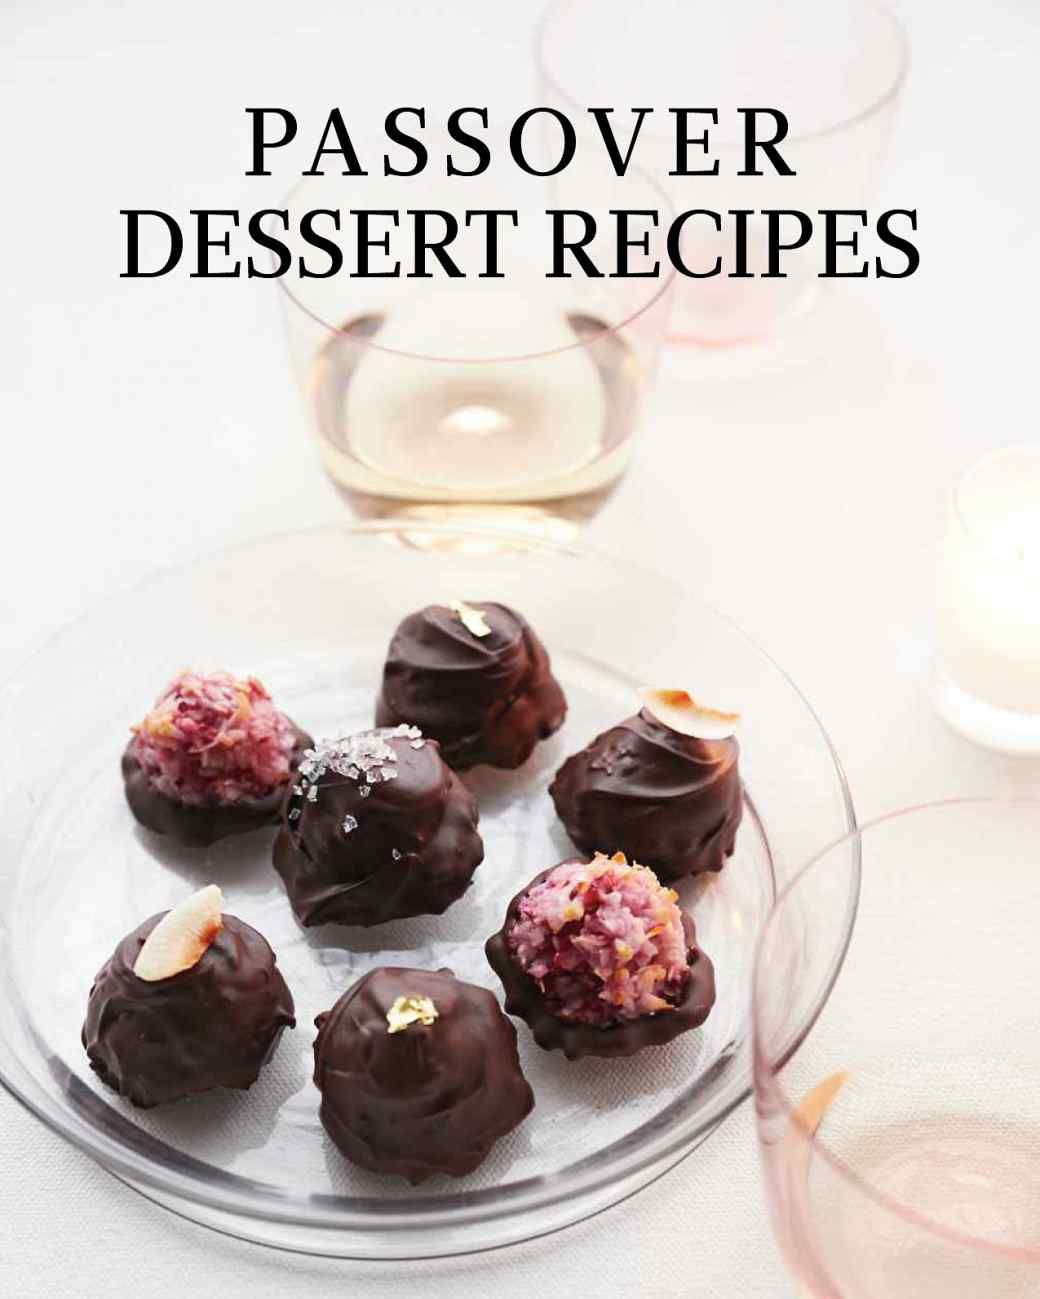 19 Passover Dessert Recipes That Might Become Your New